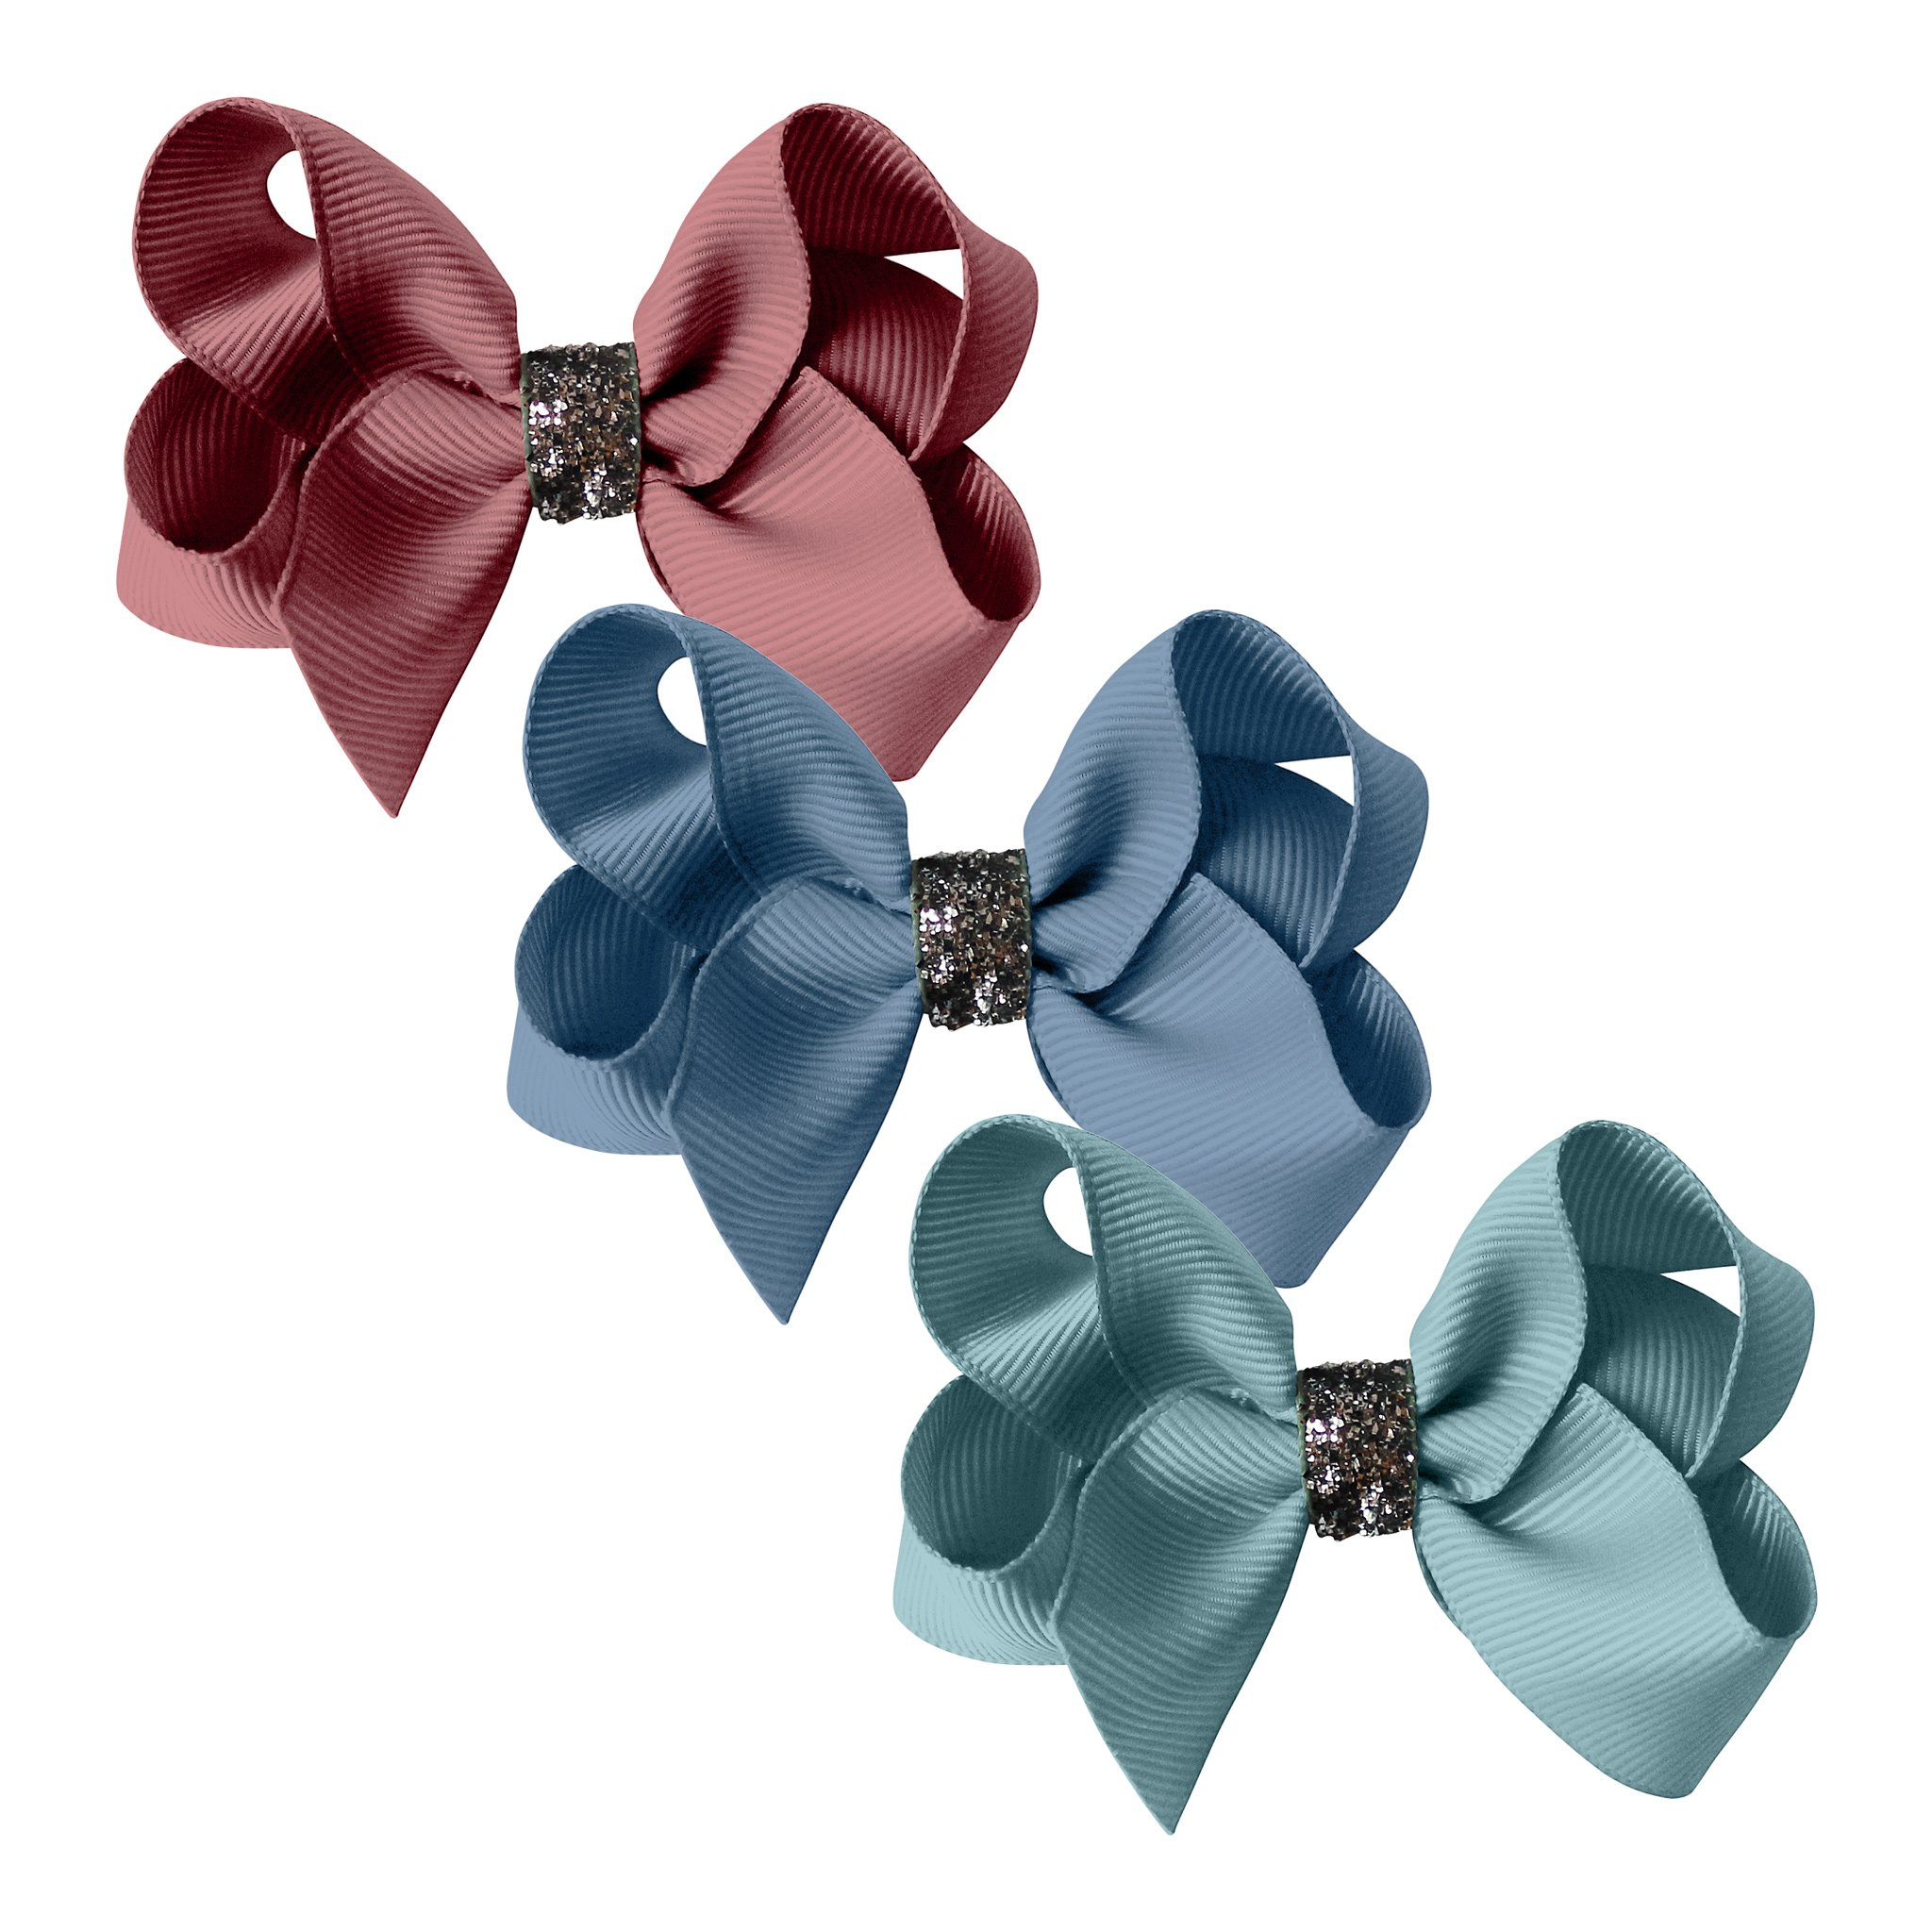 Image of Milledeux® gift set - Glitter Collection - 3 Medium boutique bows rose/blue/green